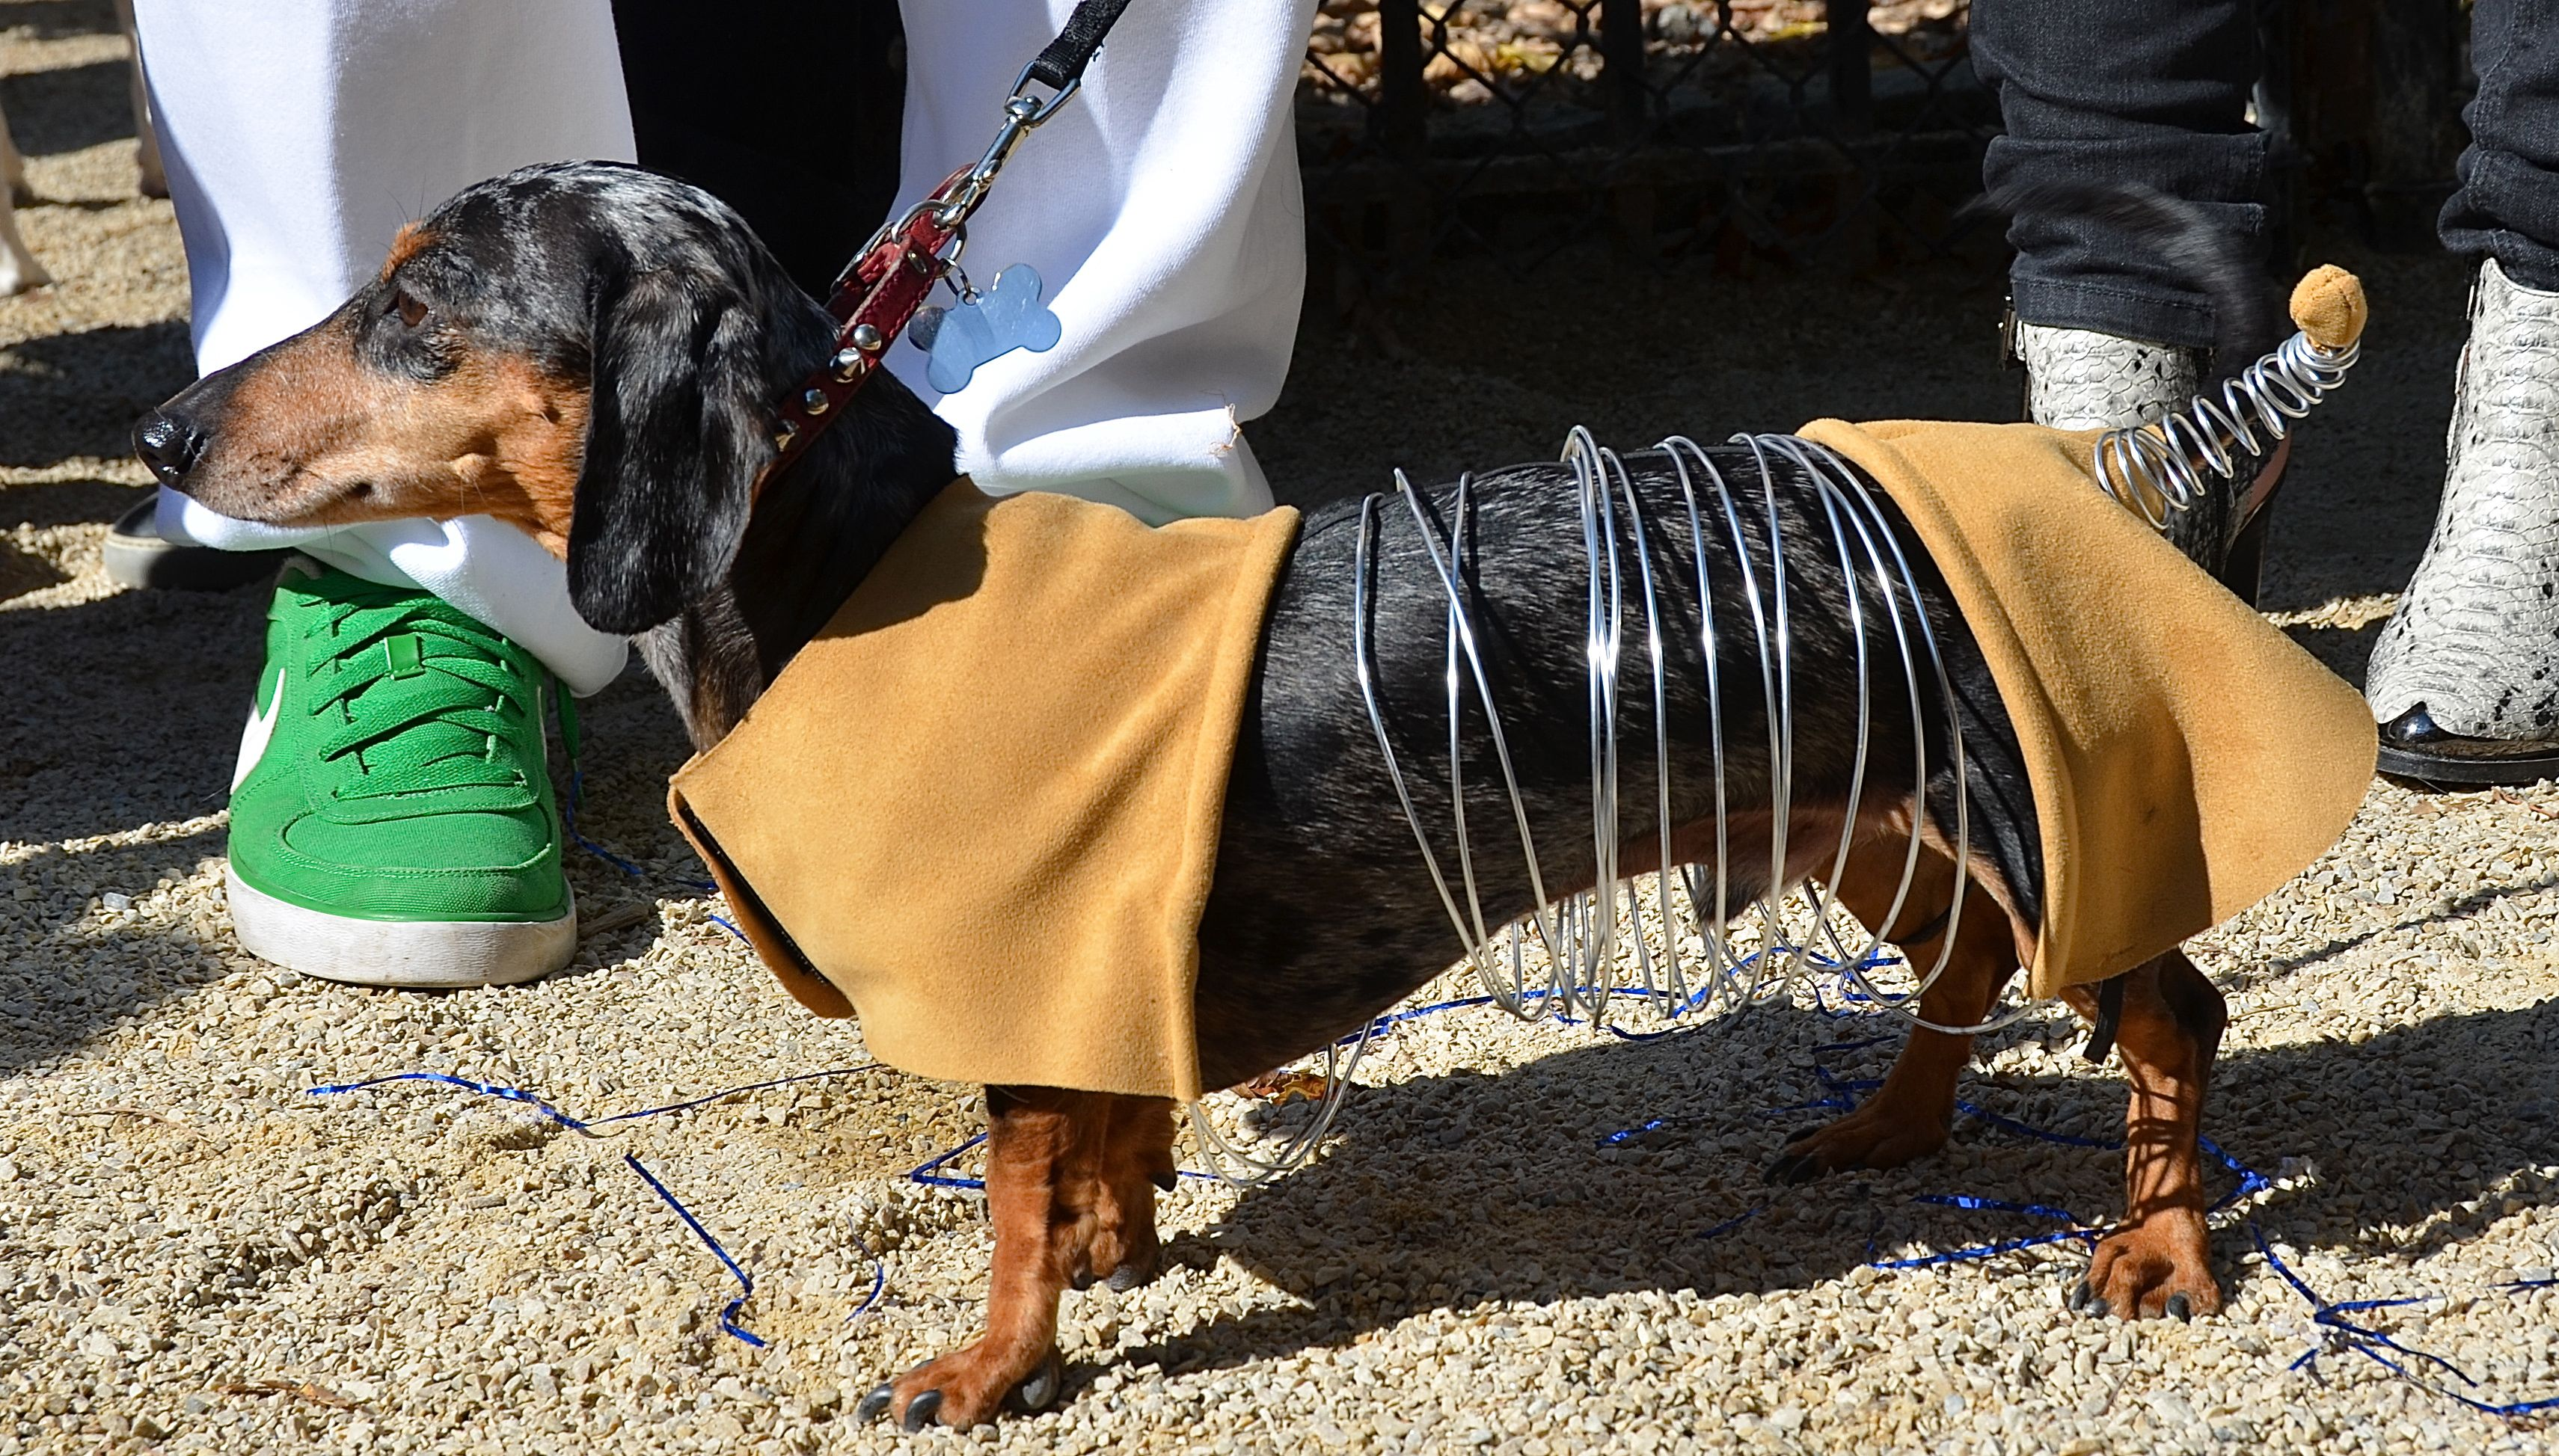 Slink From Toy Story Dax S Next Costume Dog Halloween Costumes